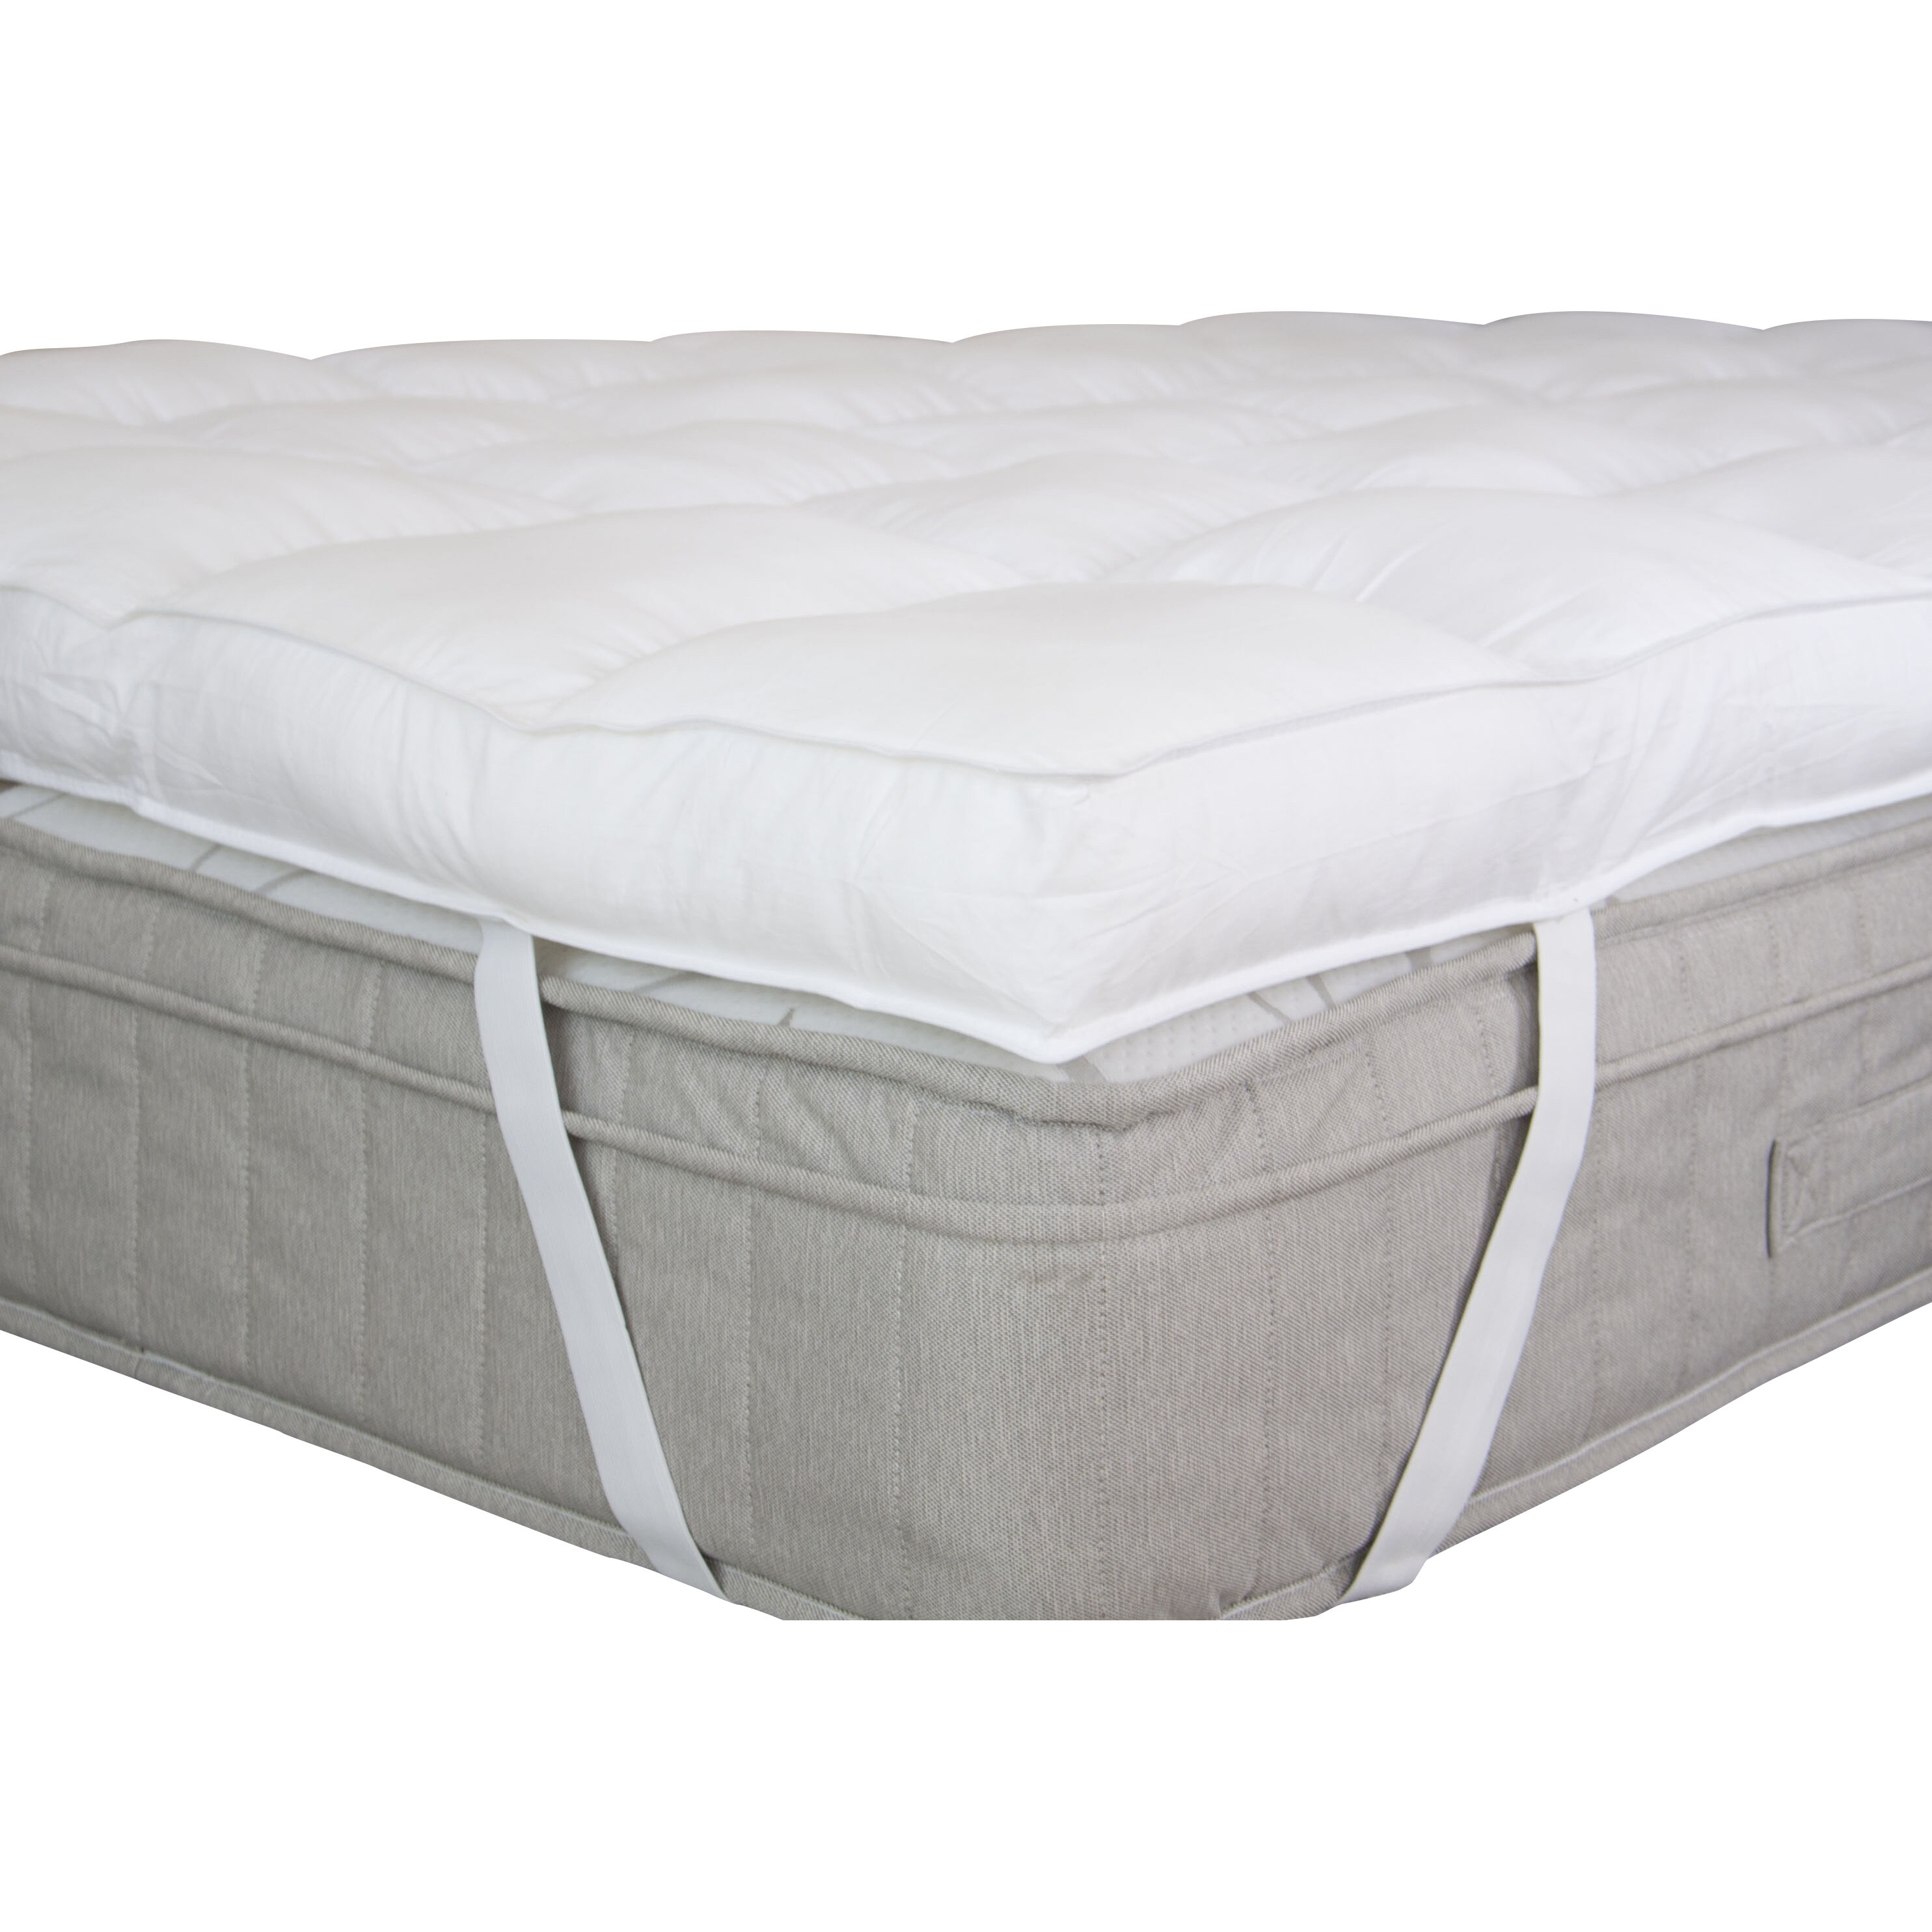 Home Etc Lancashire Hotel Quality Mattress Topper